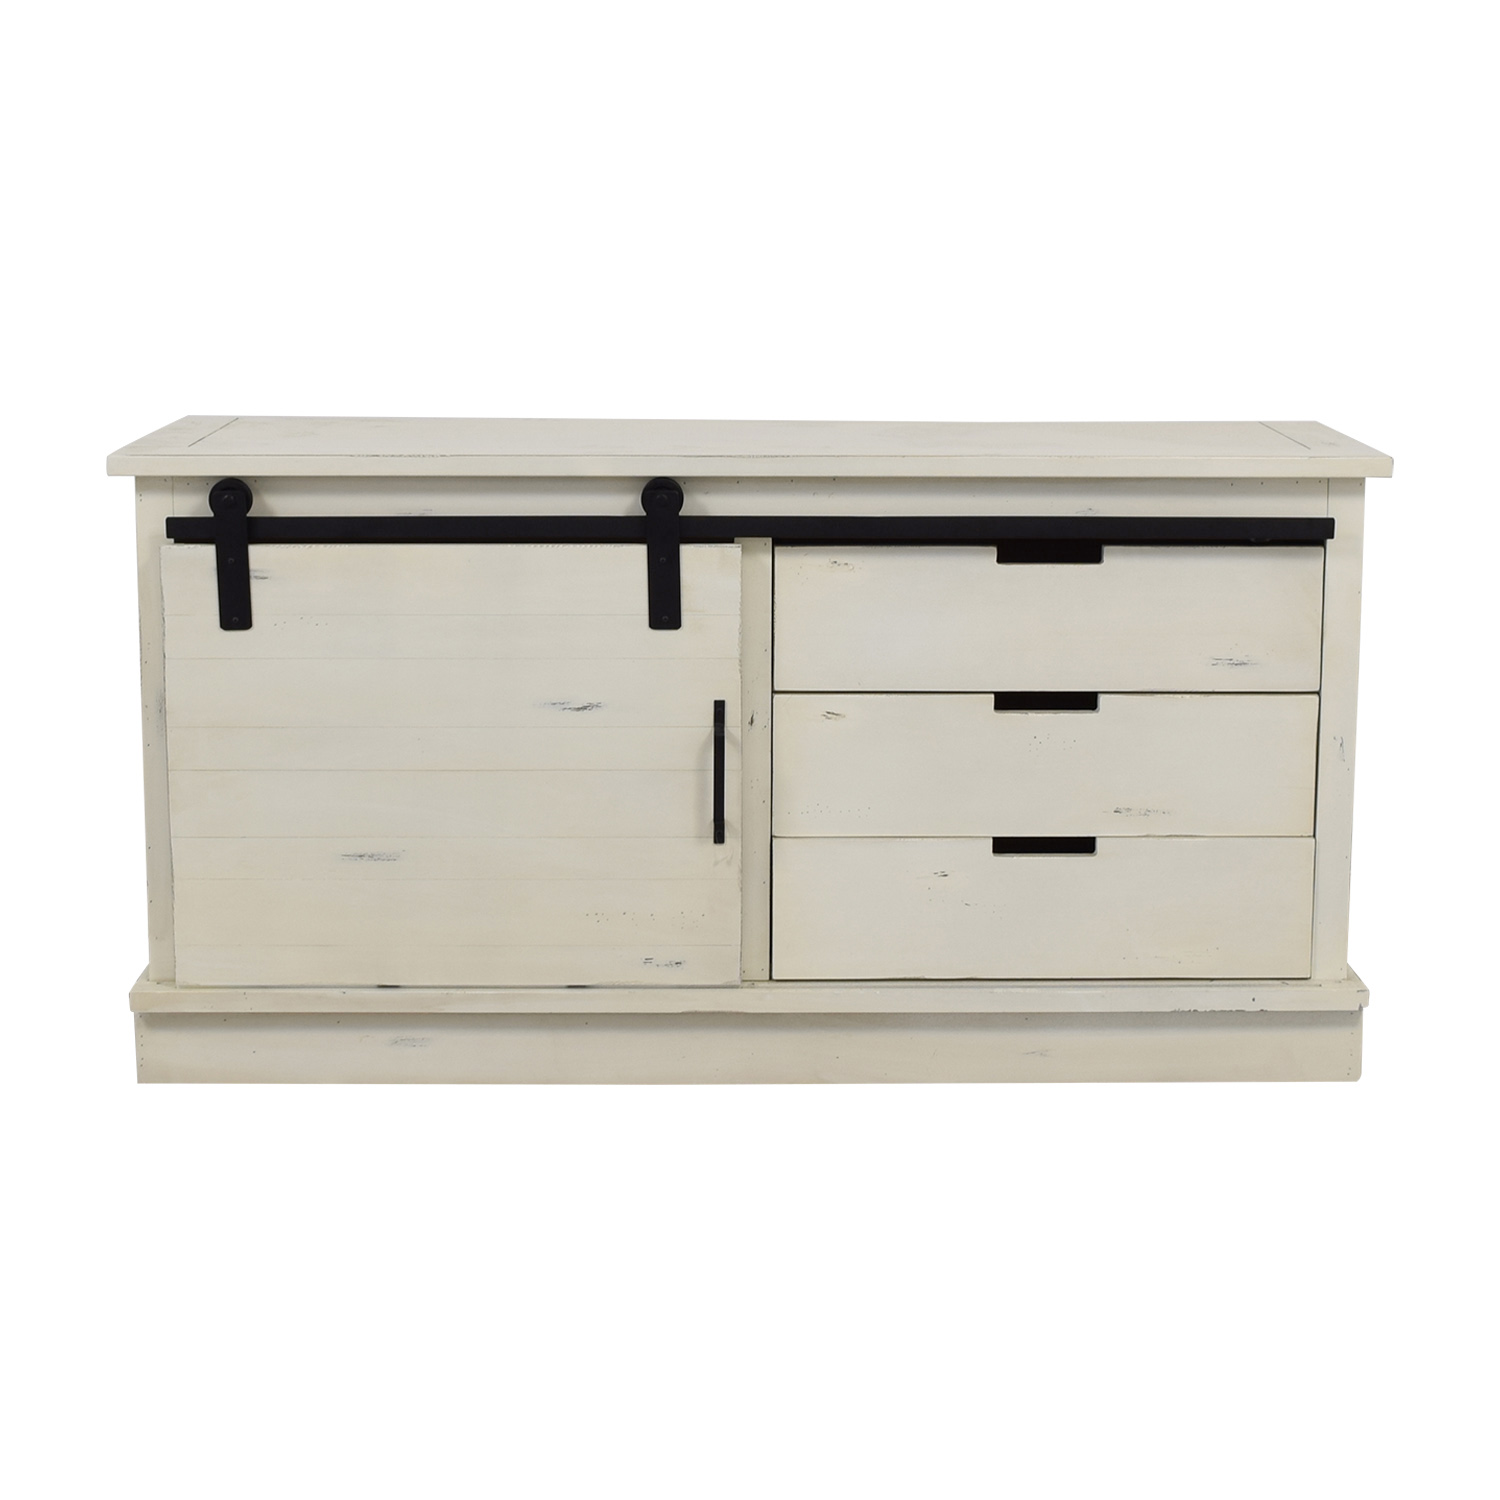 Distressed White Credenza with Three-Drawers and Shelves dimensions